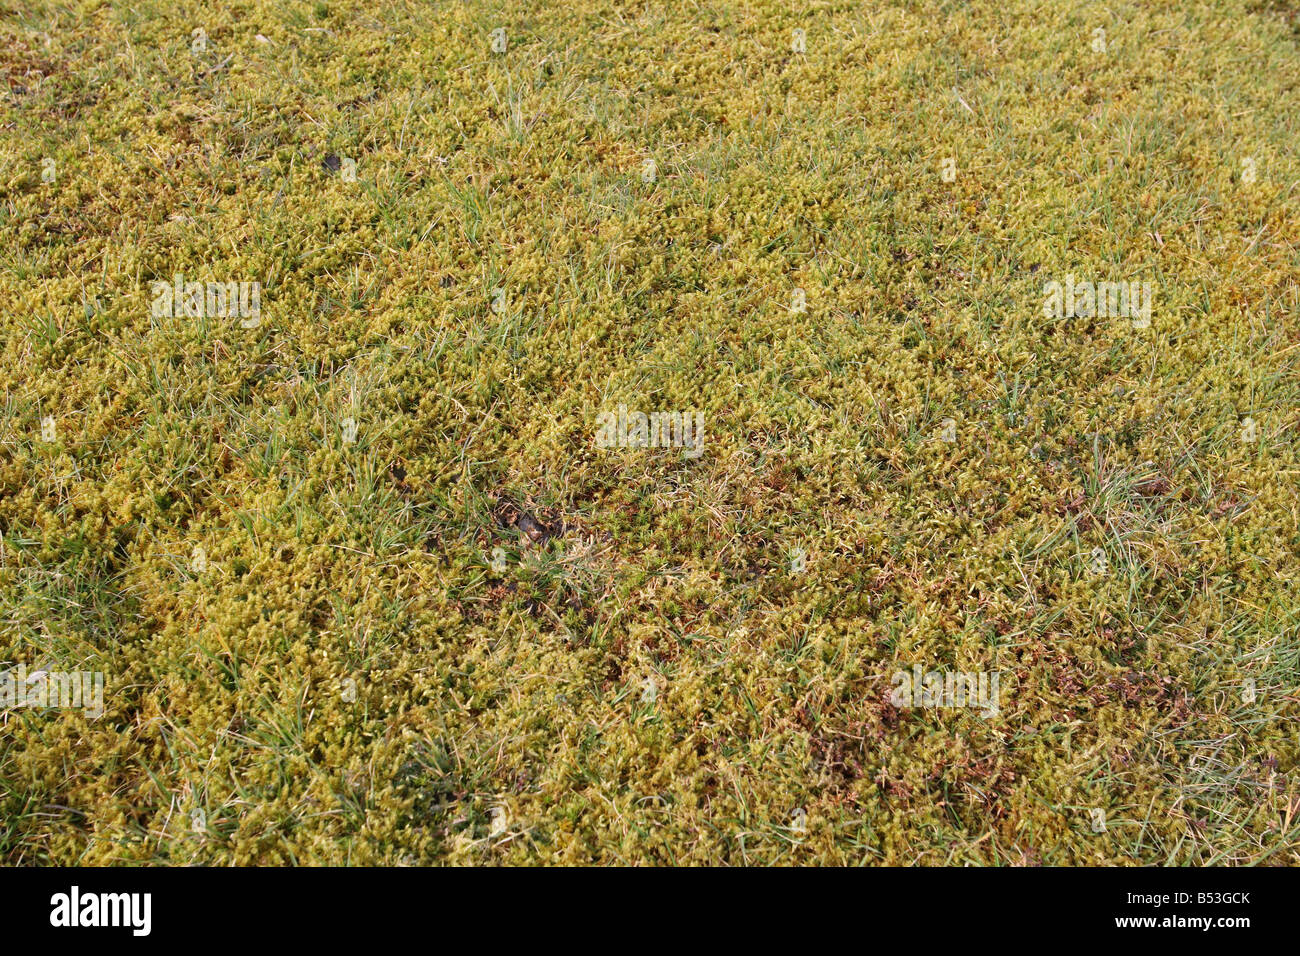 MOSS FORMS A THICK MAT ON LAWN OUT COMPETING THE GRASS - Stock Image